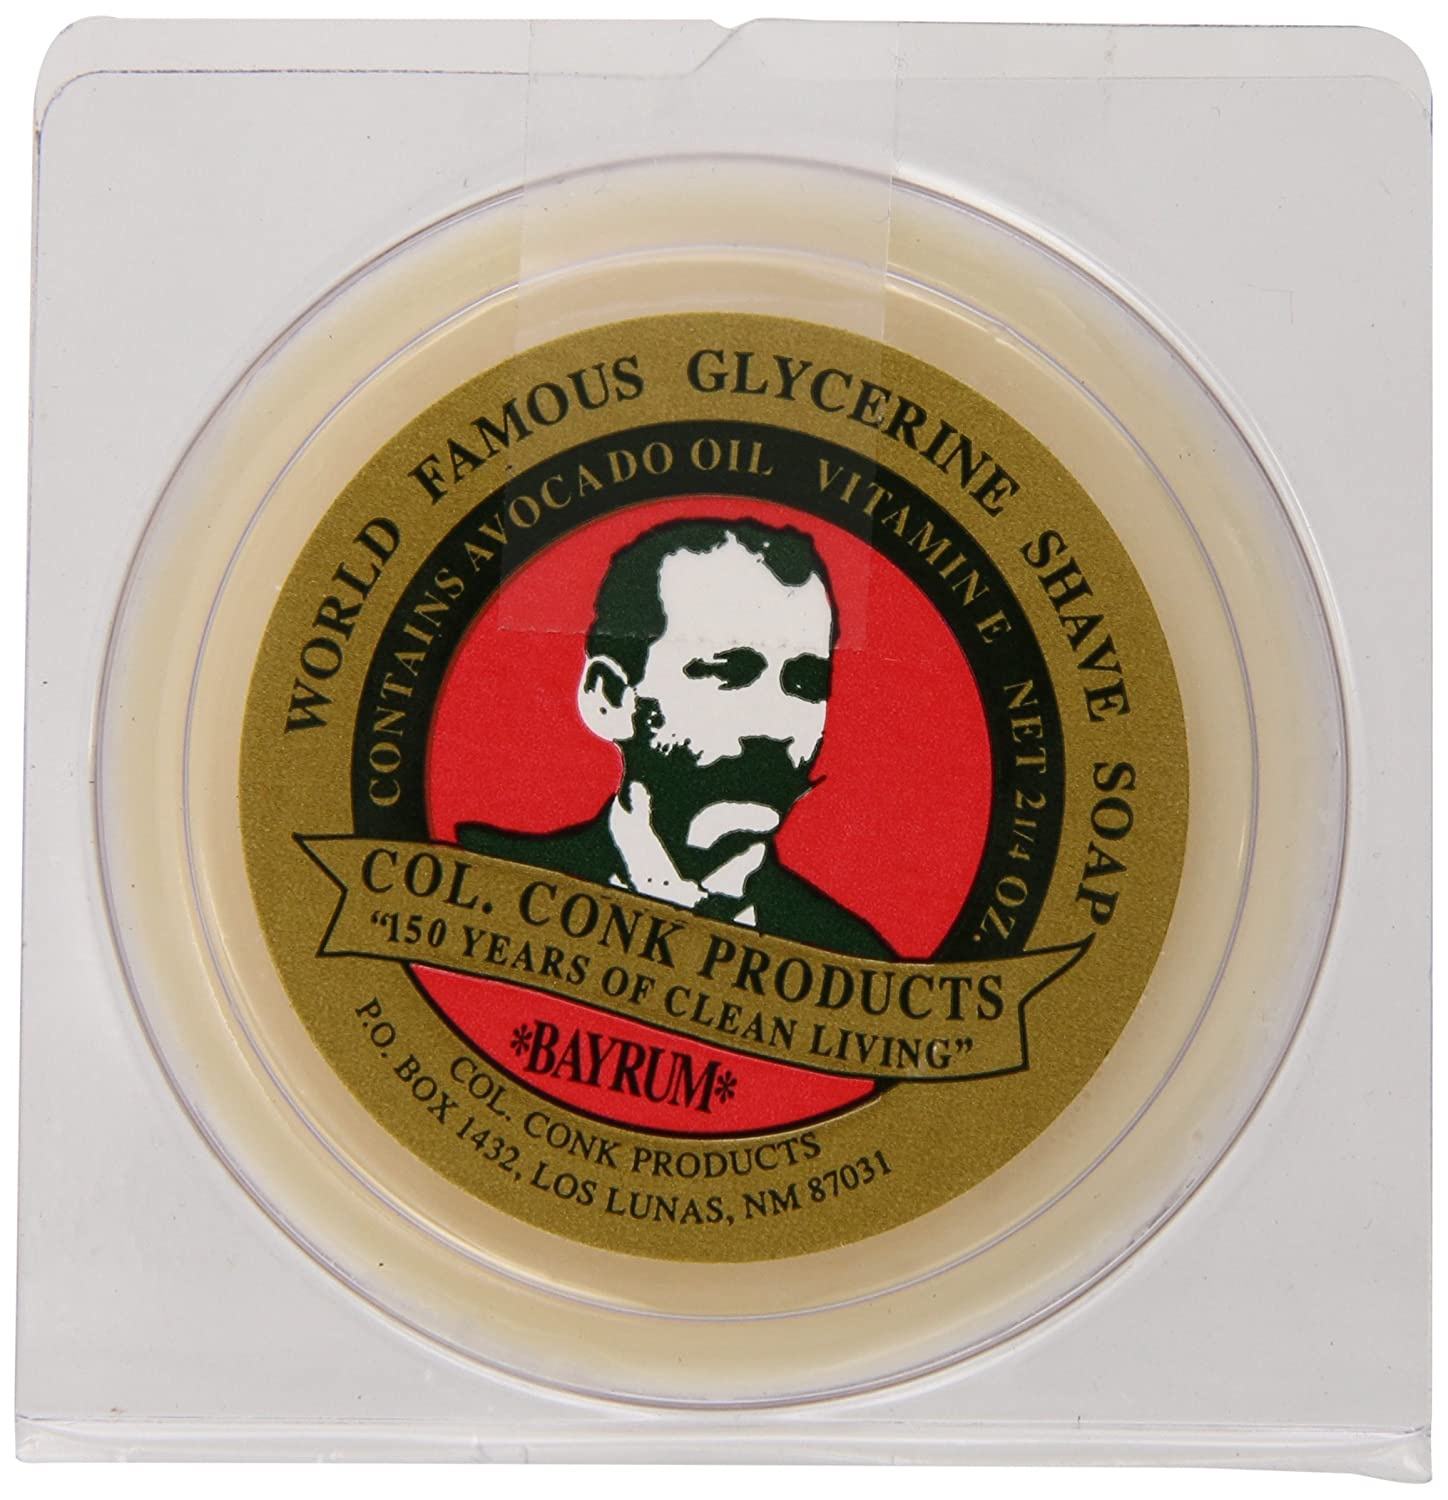 Col. Conk Worlds Famous Shaving Soap, Bay Rum (Net Weight 2.25 Oz) Colonel Conk C4-51BK-GY2N